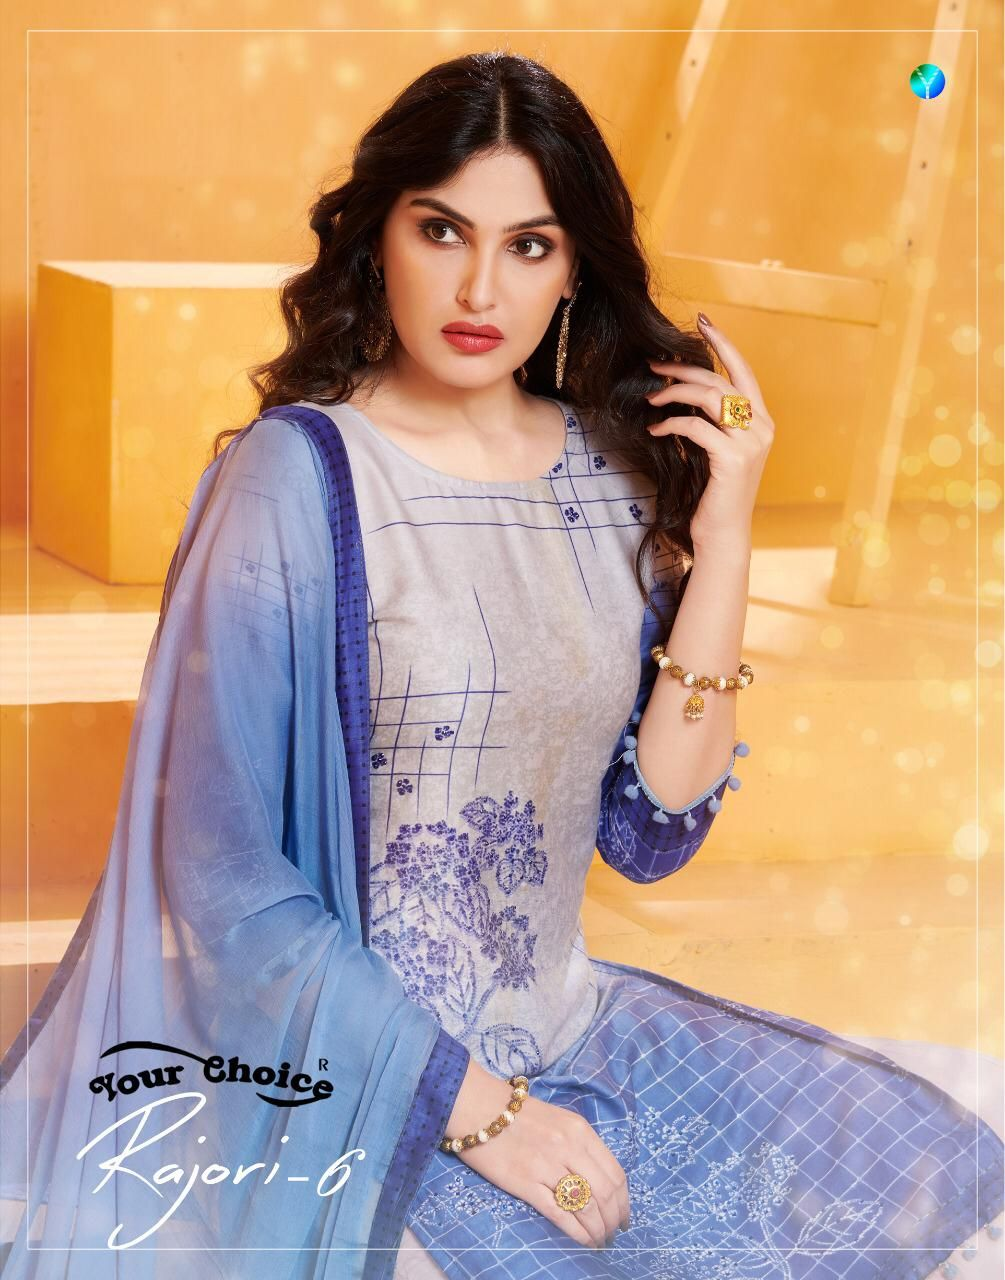 81182a11f0 YOUR CHOICE RAJORI VOL 6 PRINTED PURE COTTON DRESS MATERIAL COLLECTION AT  WHOLESALE RATE